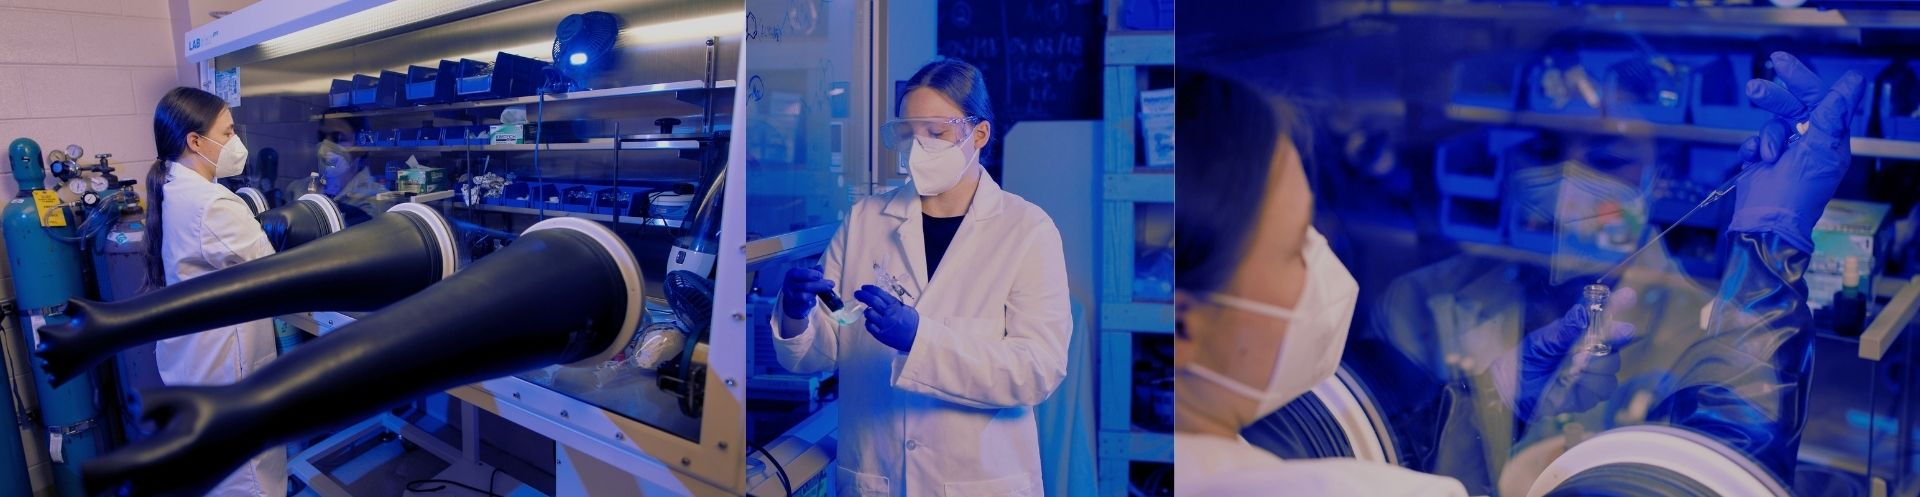 Postdoctoral researcher brings international experience to inorganic chemistry lab